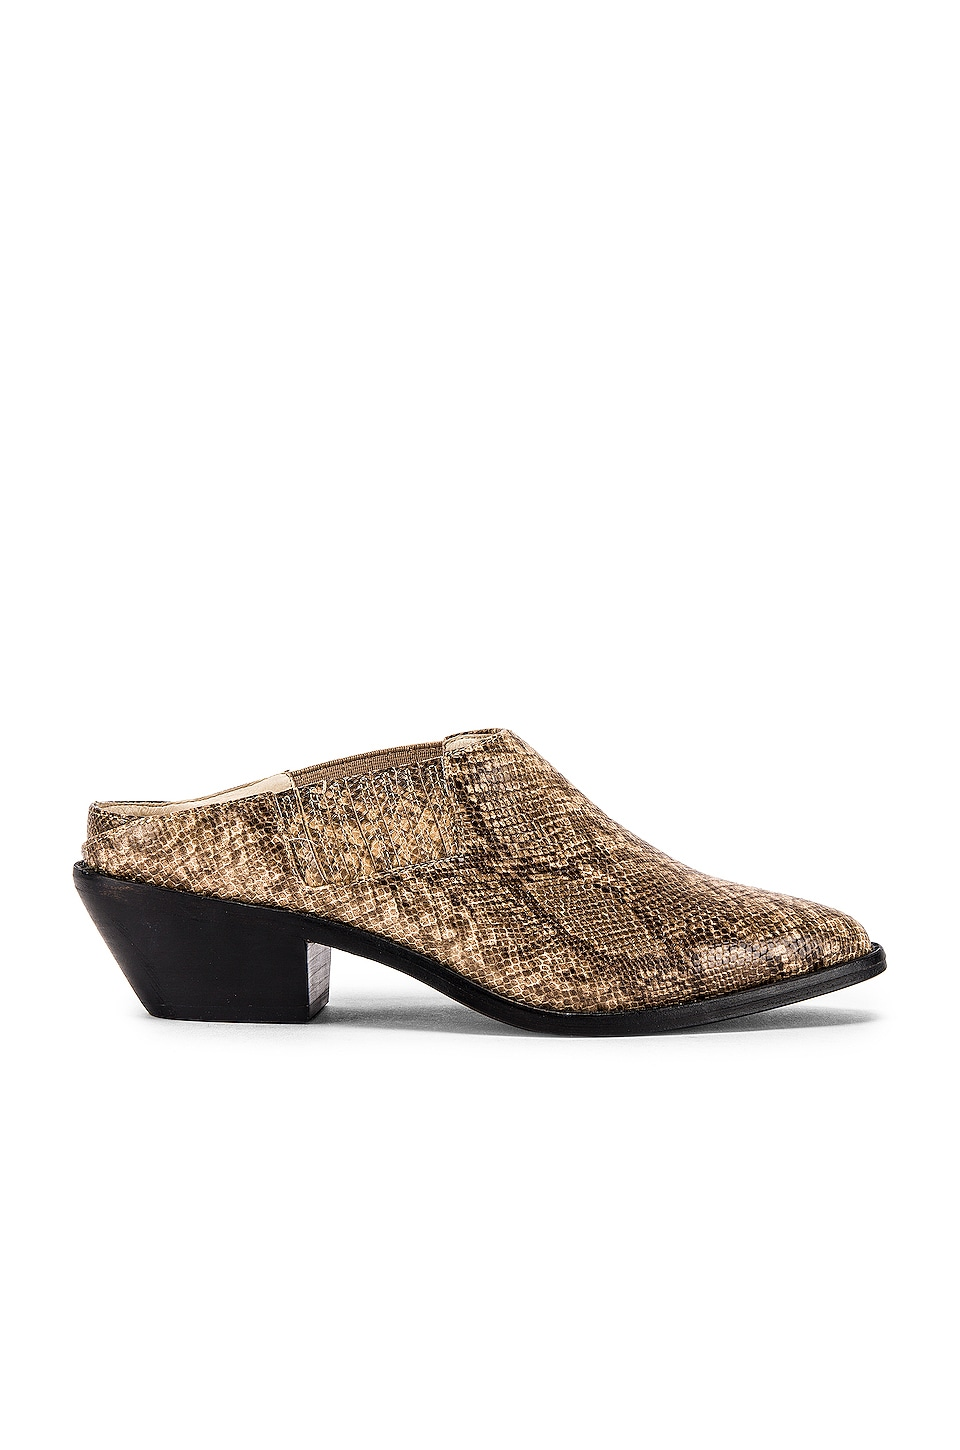 RAYE Derby Heel in Taupe